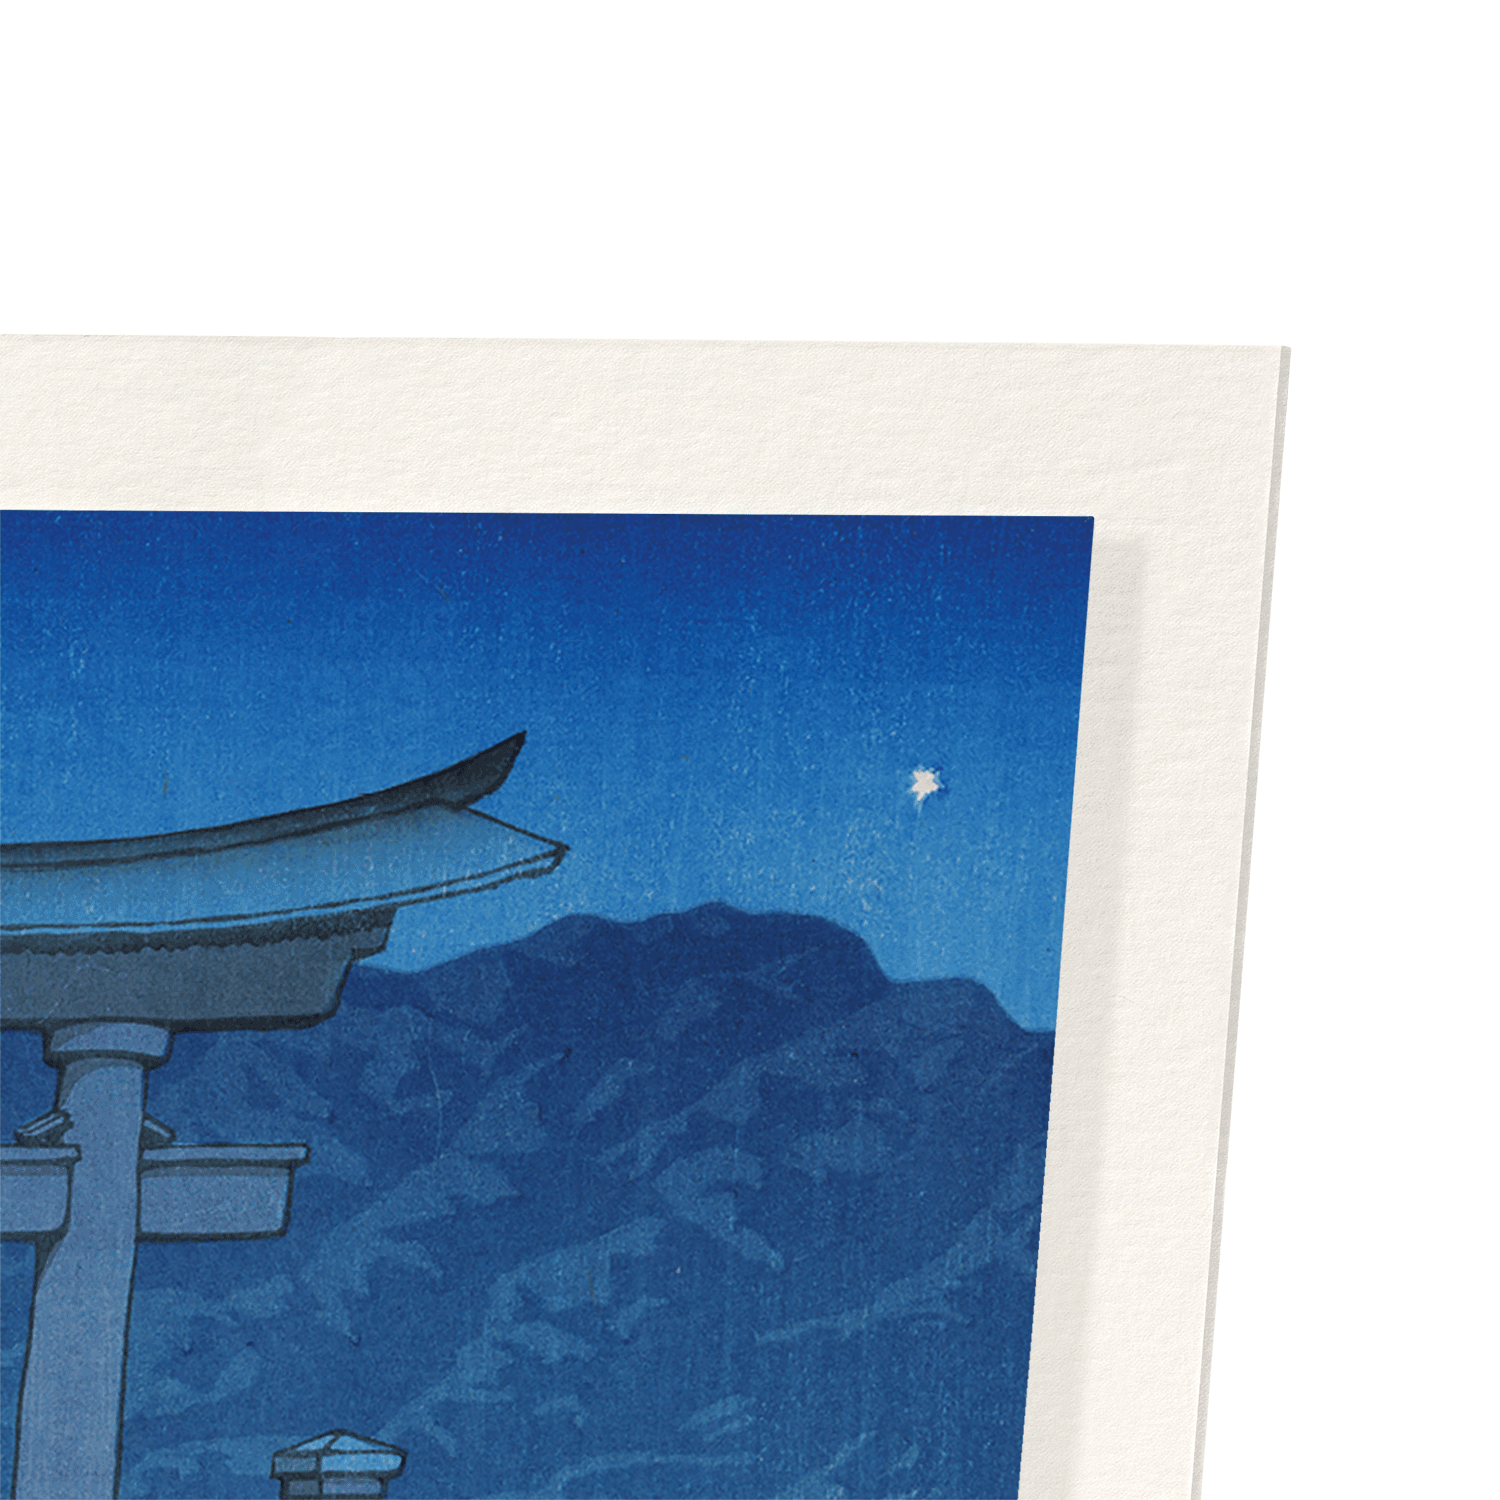 STARRY NIGHT OF MIYAJIMA: 2xPrints